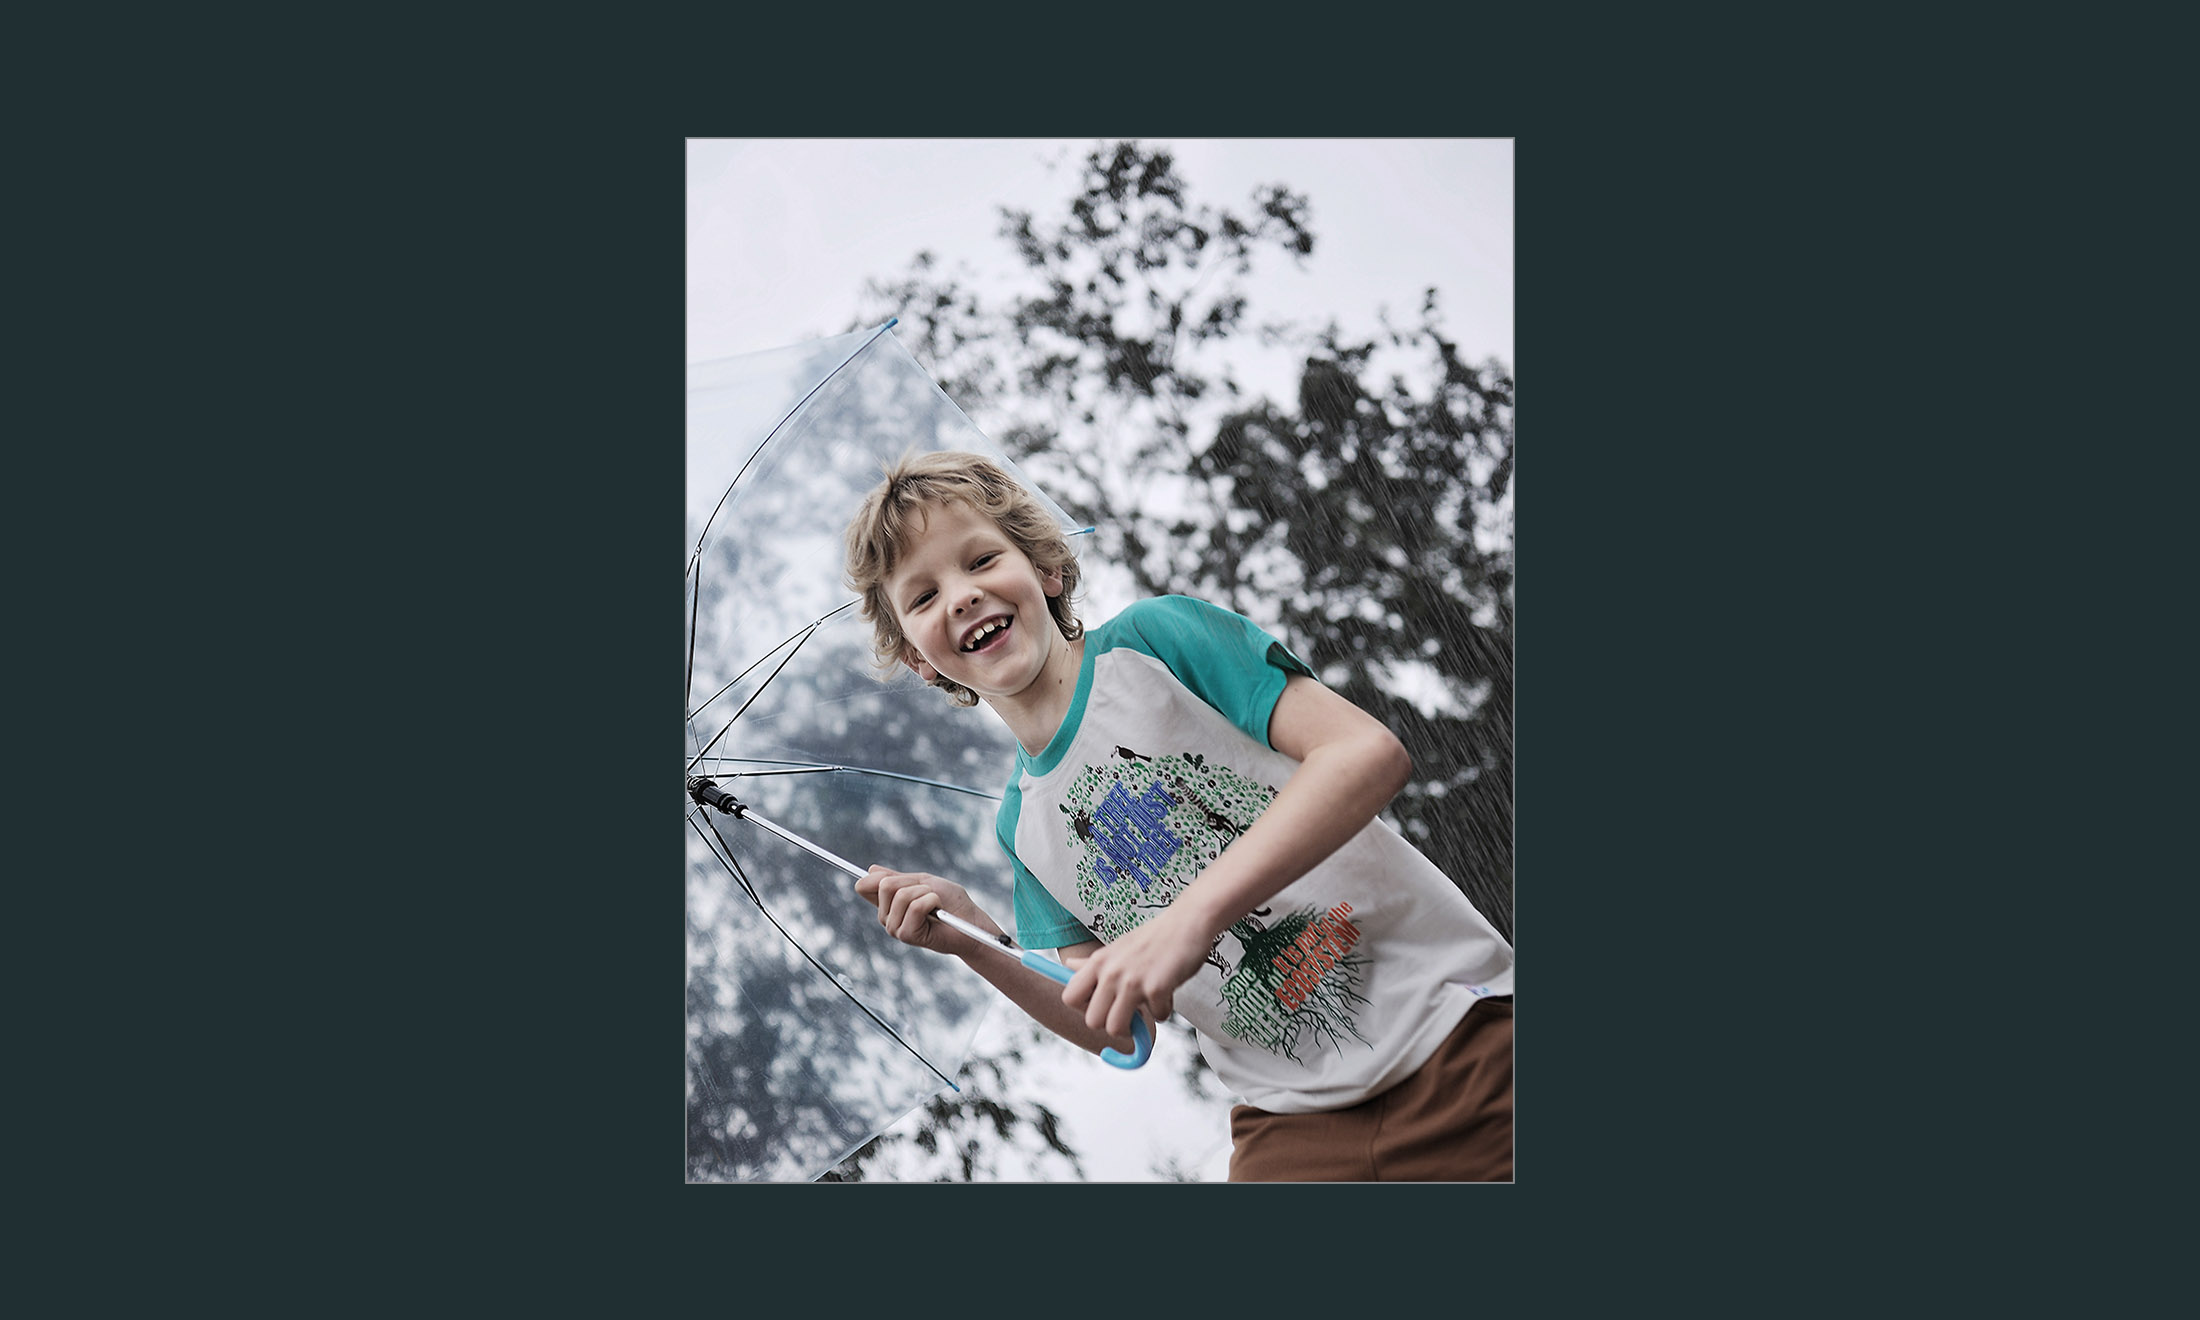 a kid holding umbrella 10